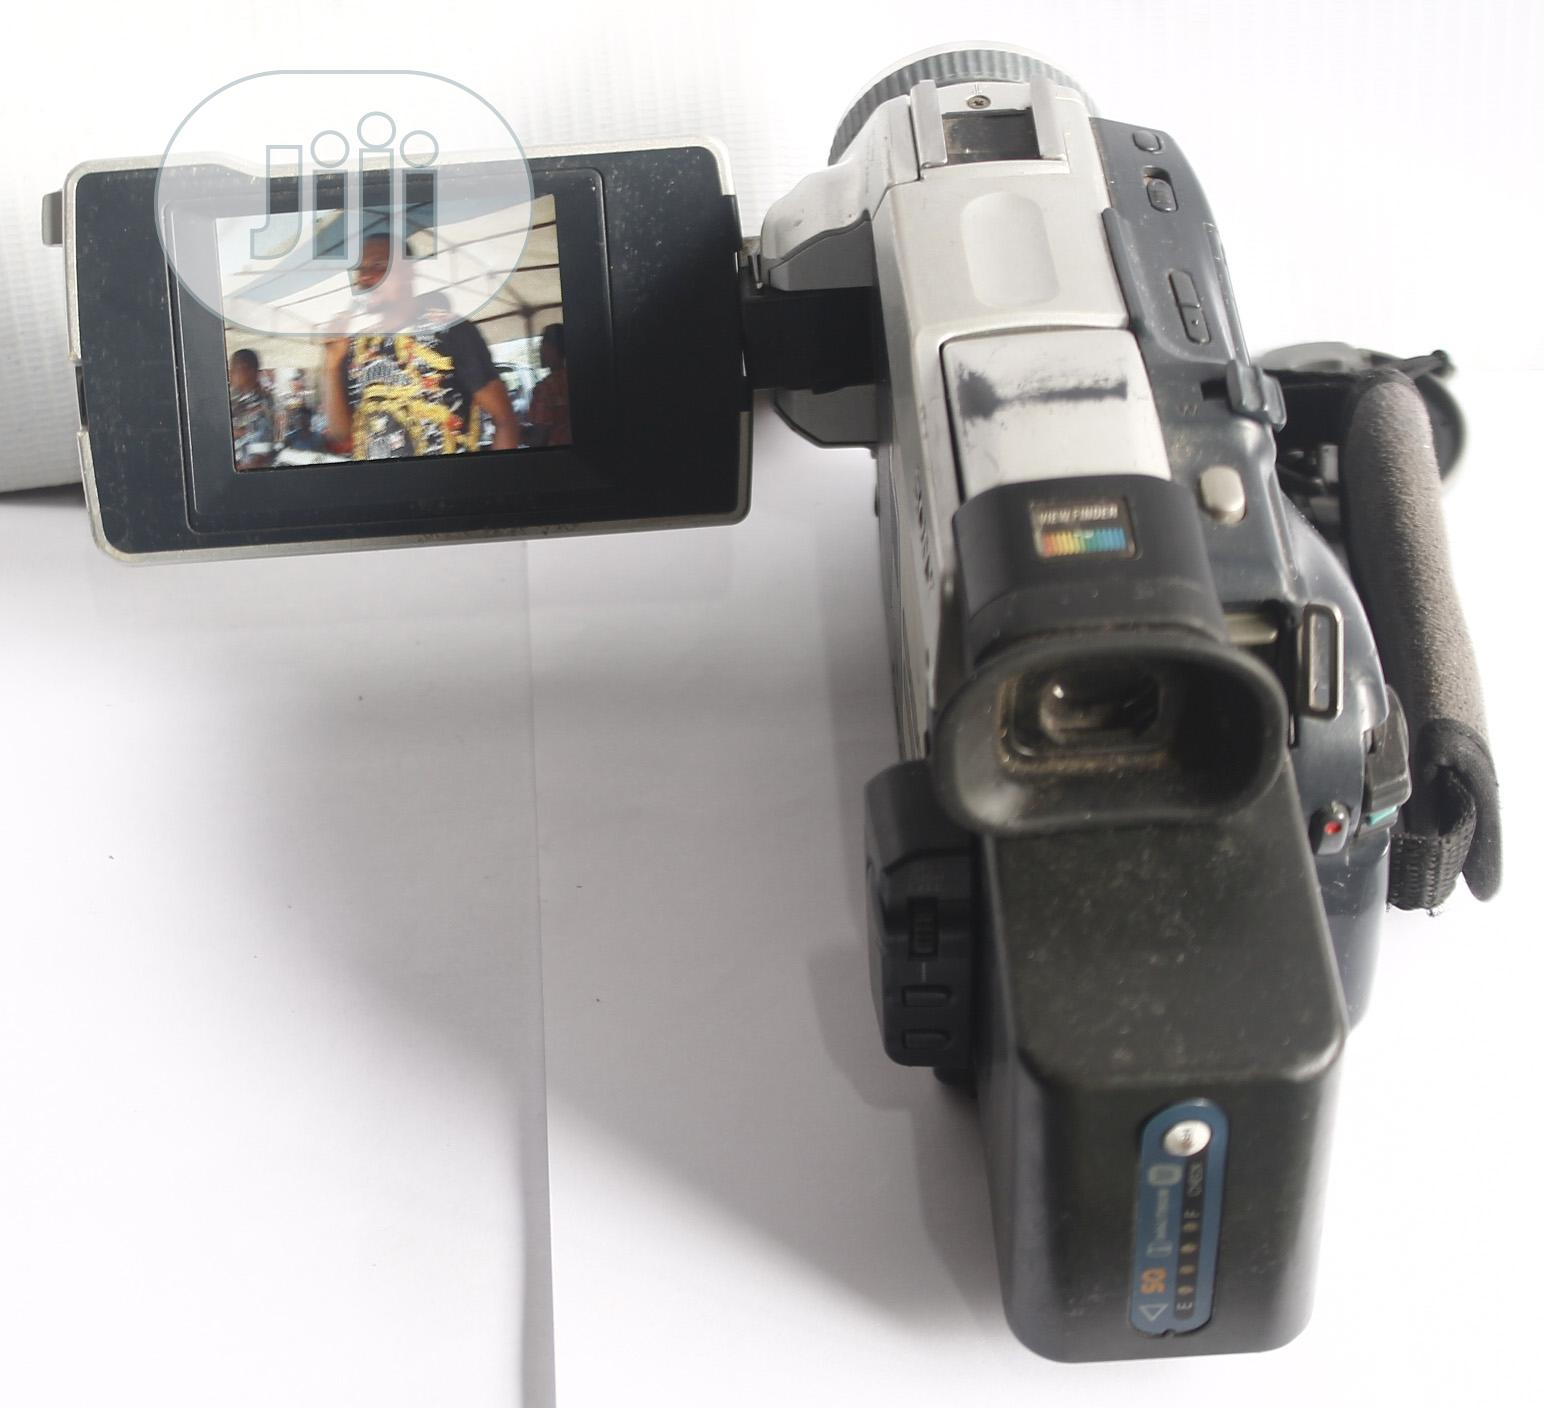 Archive: Used SONY Camera